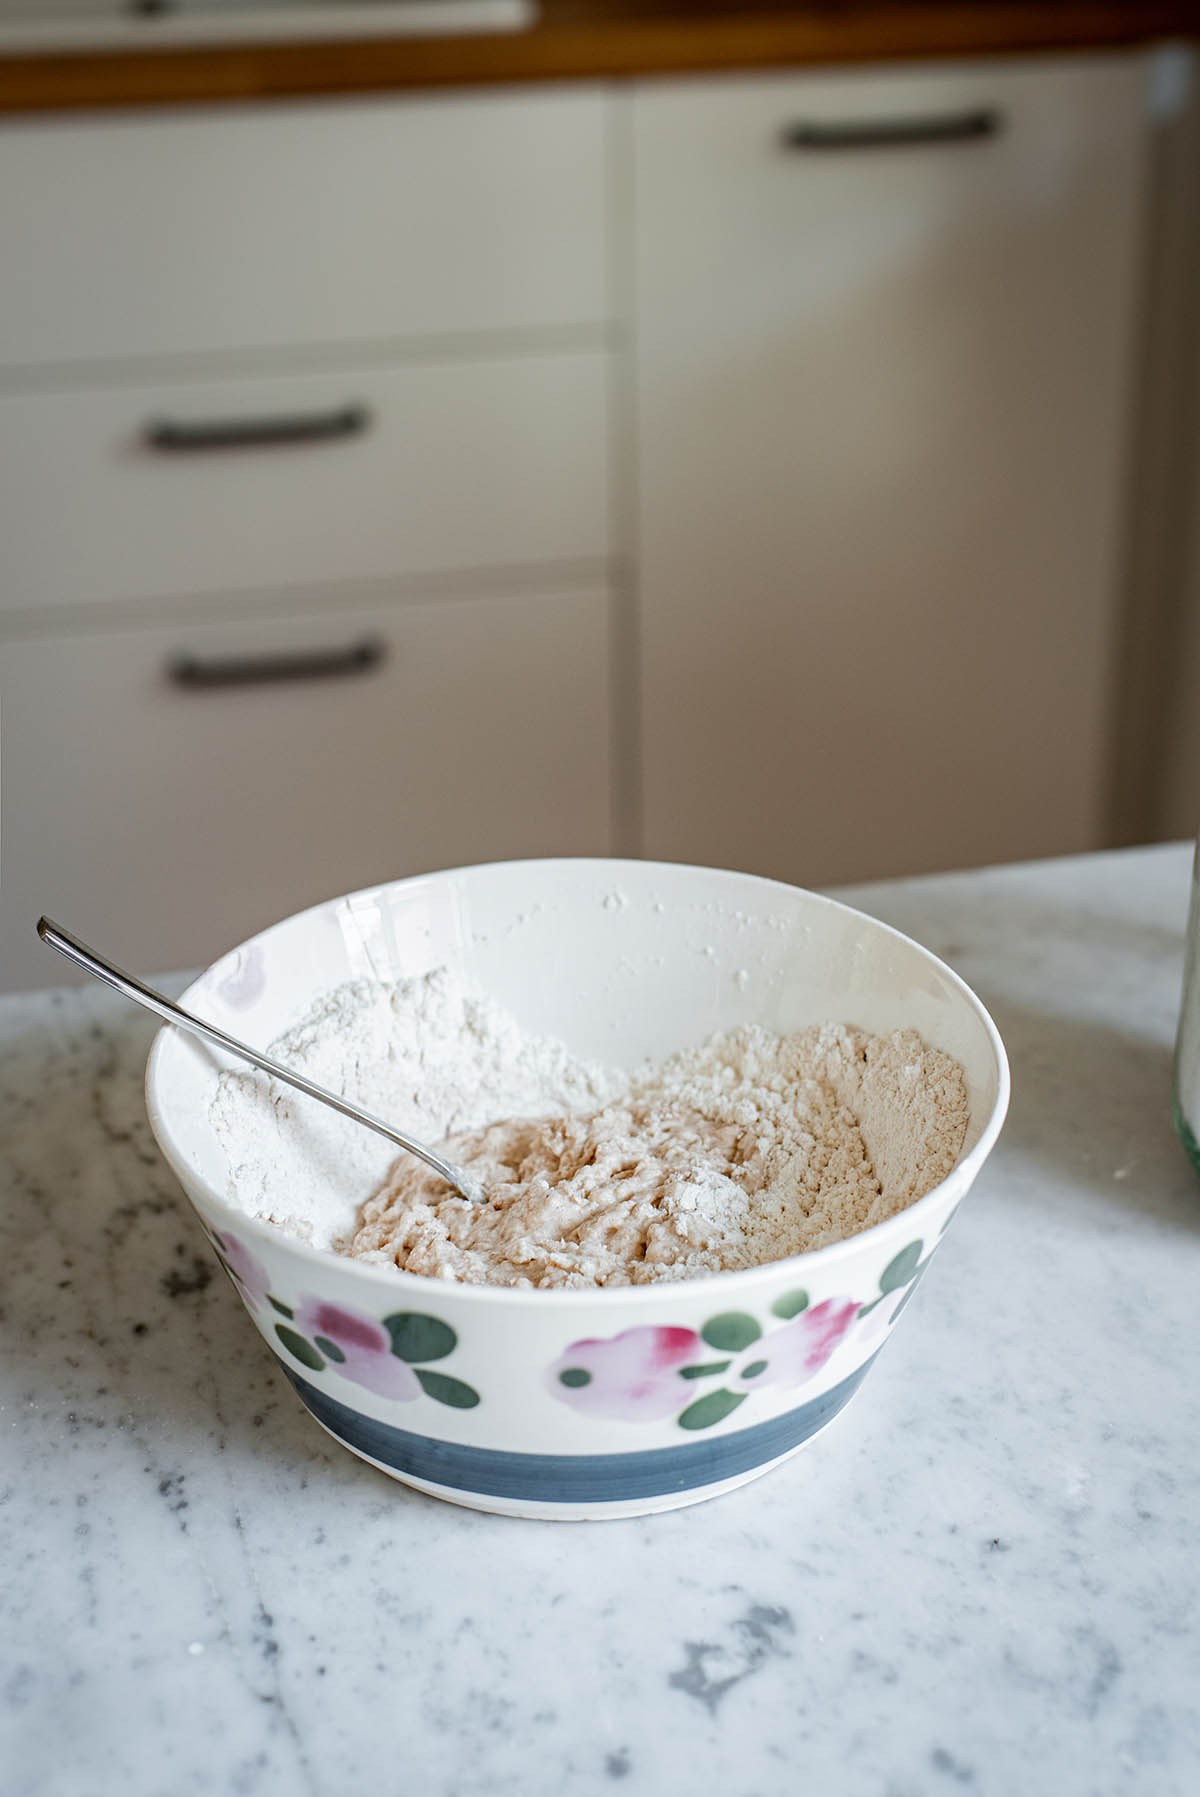 Spelt pasta dough in a bowl with a fork, partially mixed.